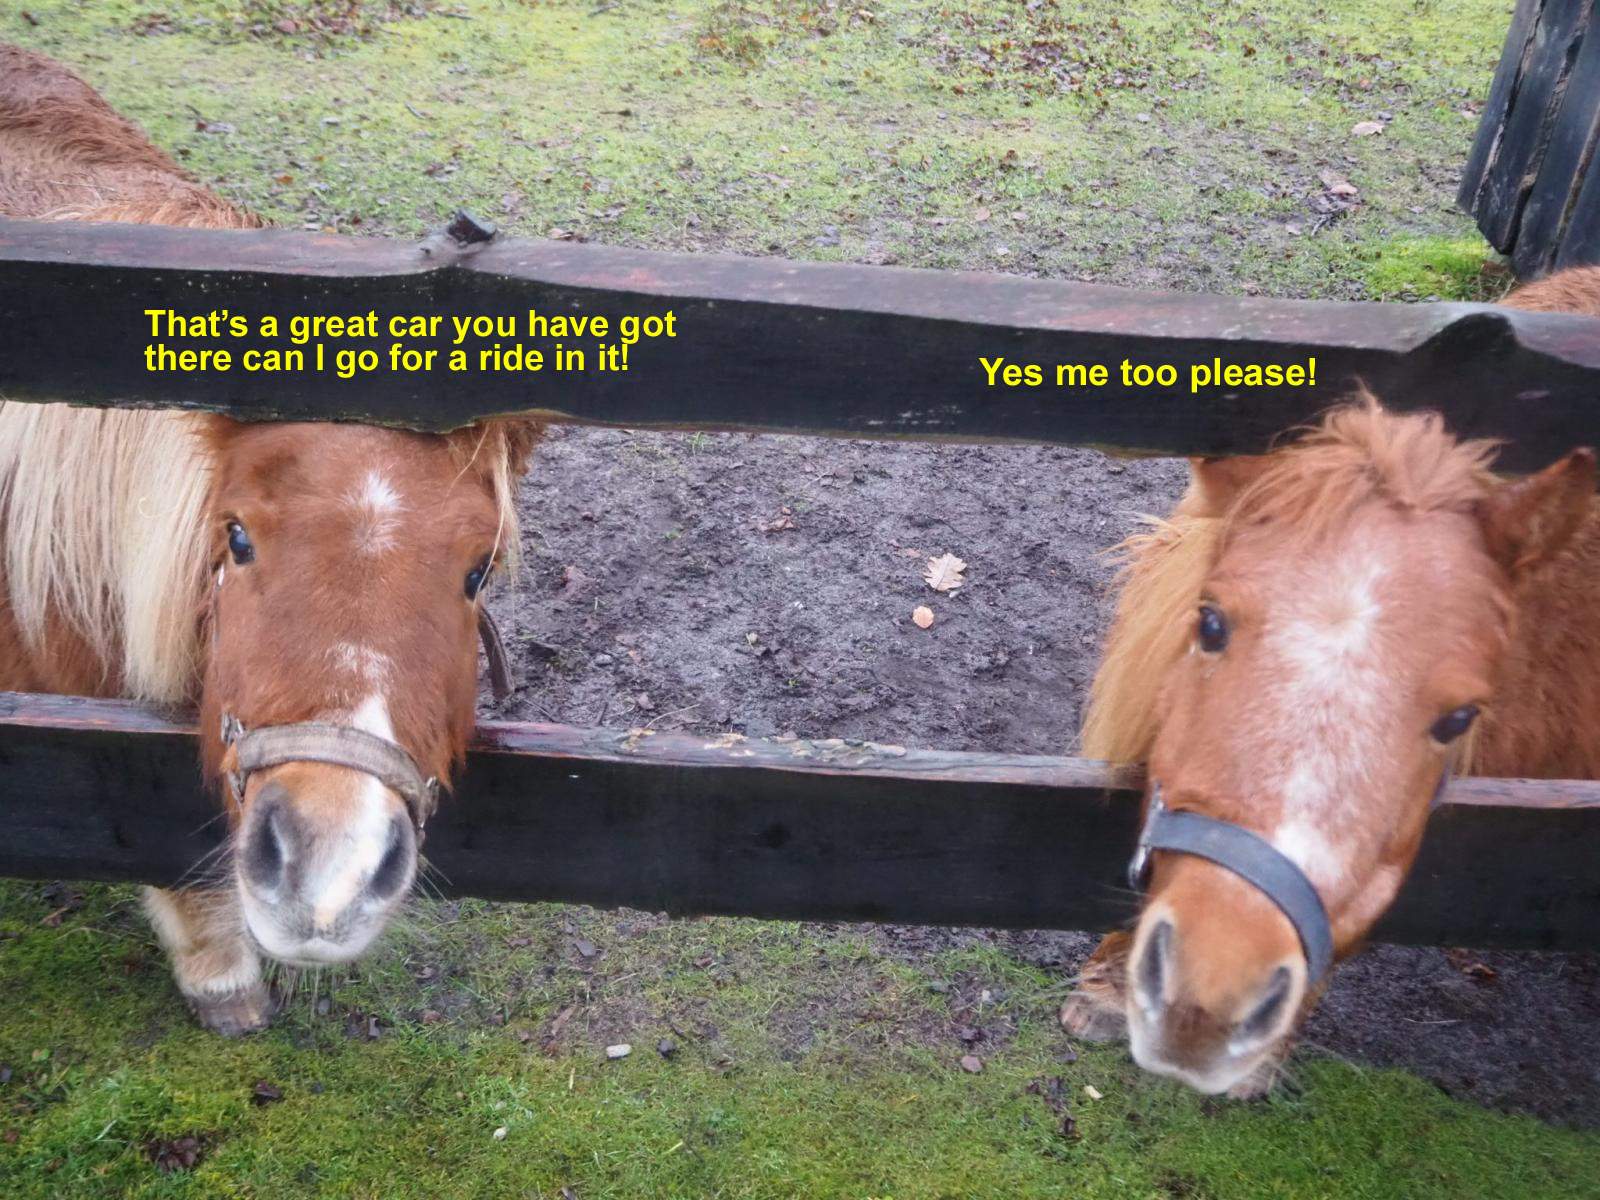 Horses miniture with words.jpg